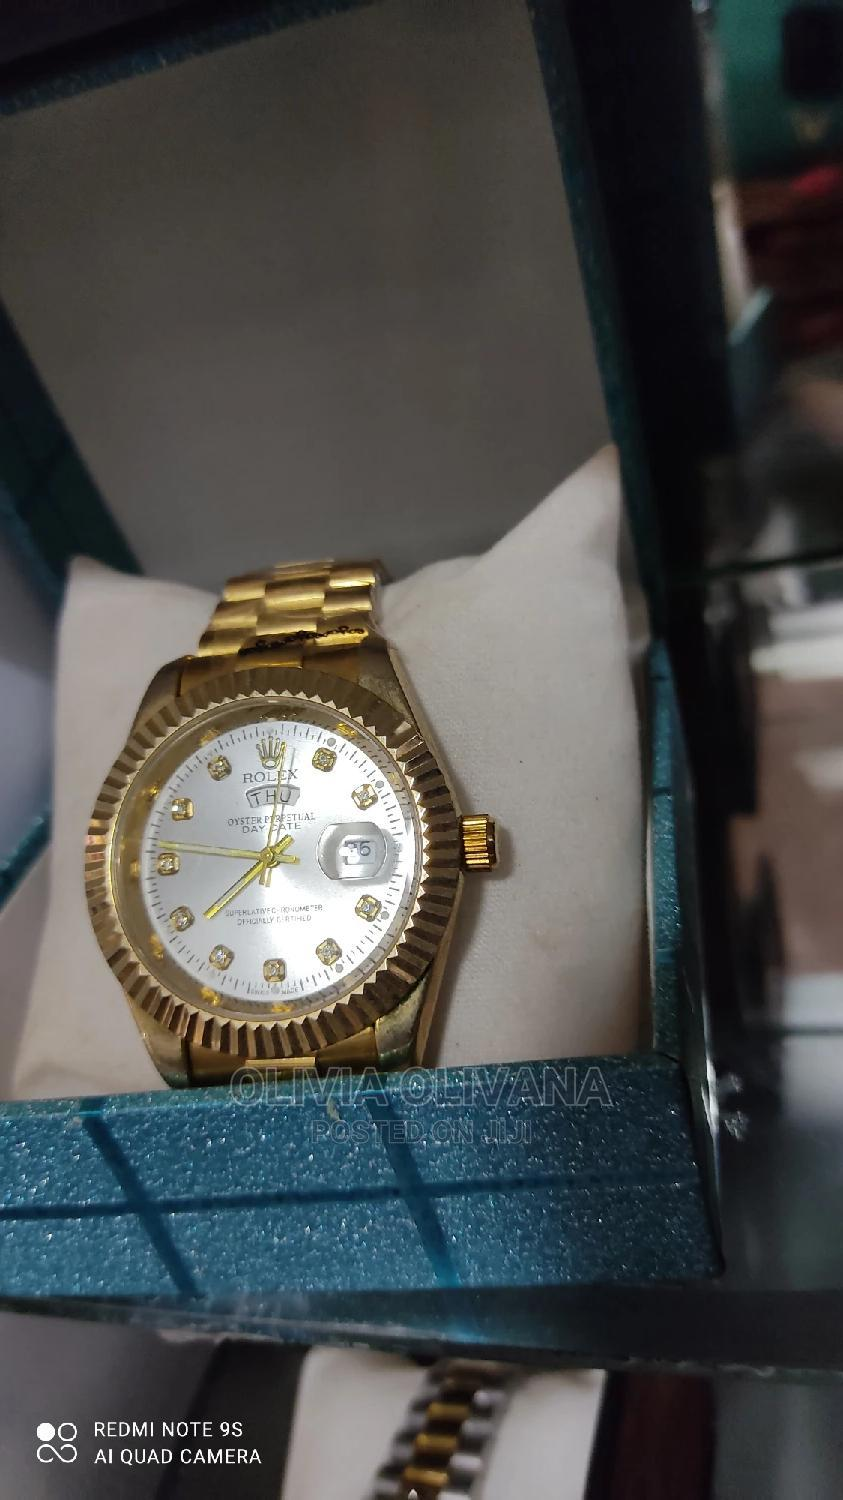 Watch Watch Available | Watches for sale in Kampala, Uganda